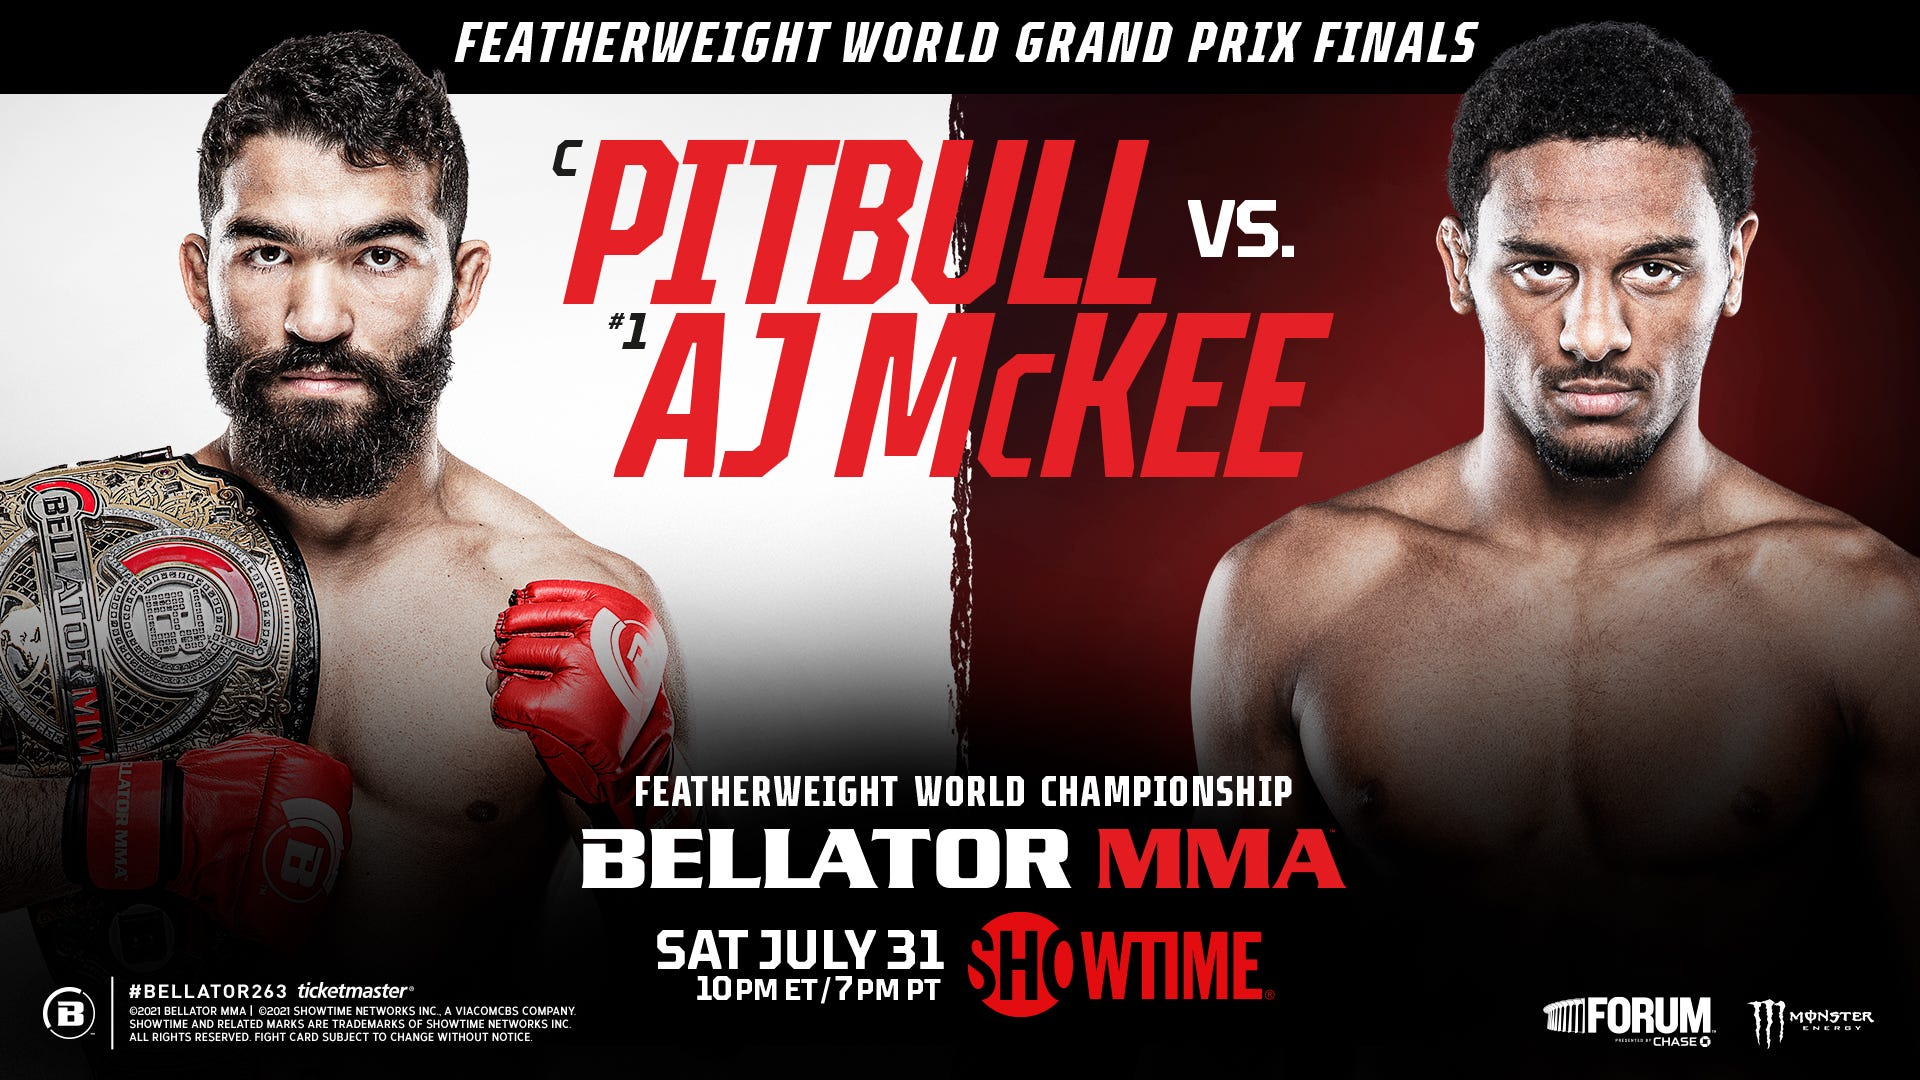 Win a Pair of Tickets to Bellator MMA263 at the Forum!